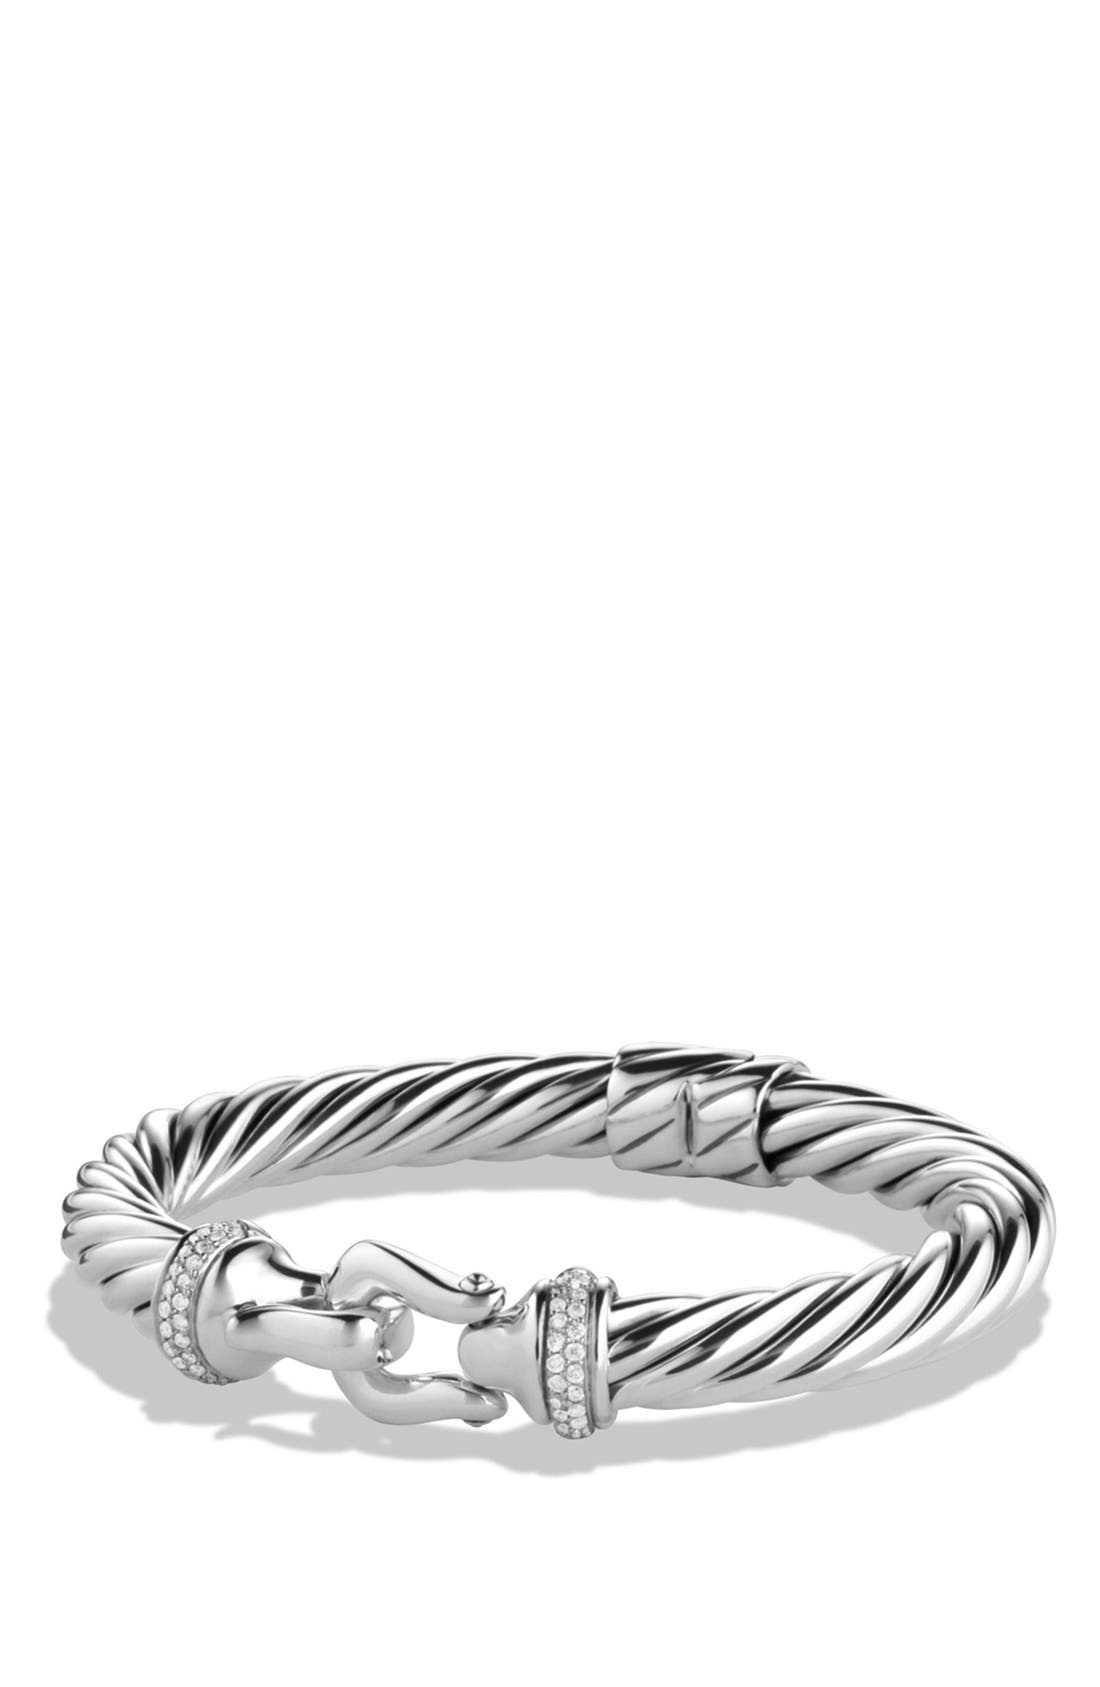 DAVID YURMAN 'Buckle Cable' Bracelet with Diamonds